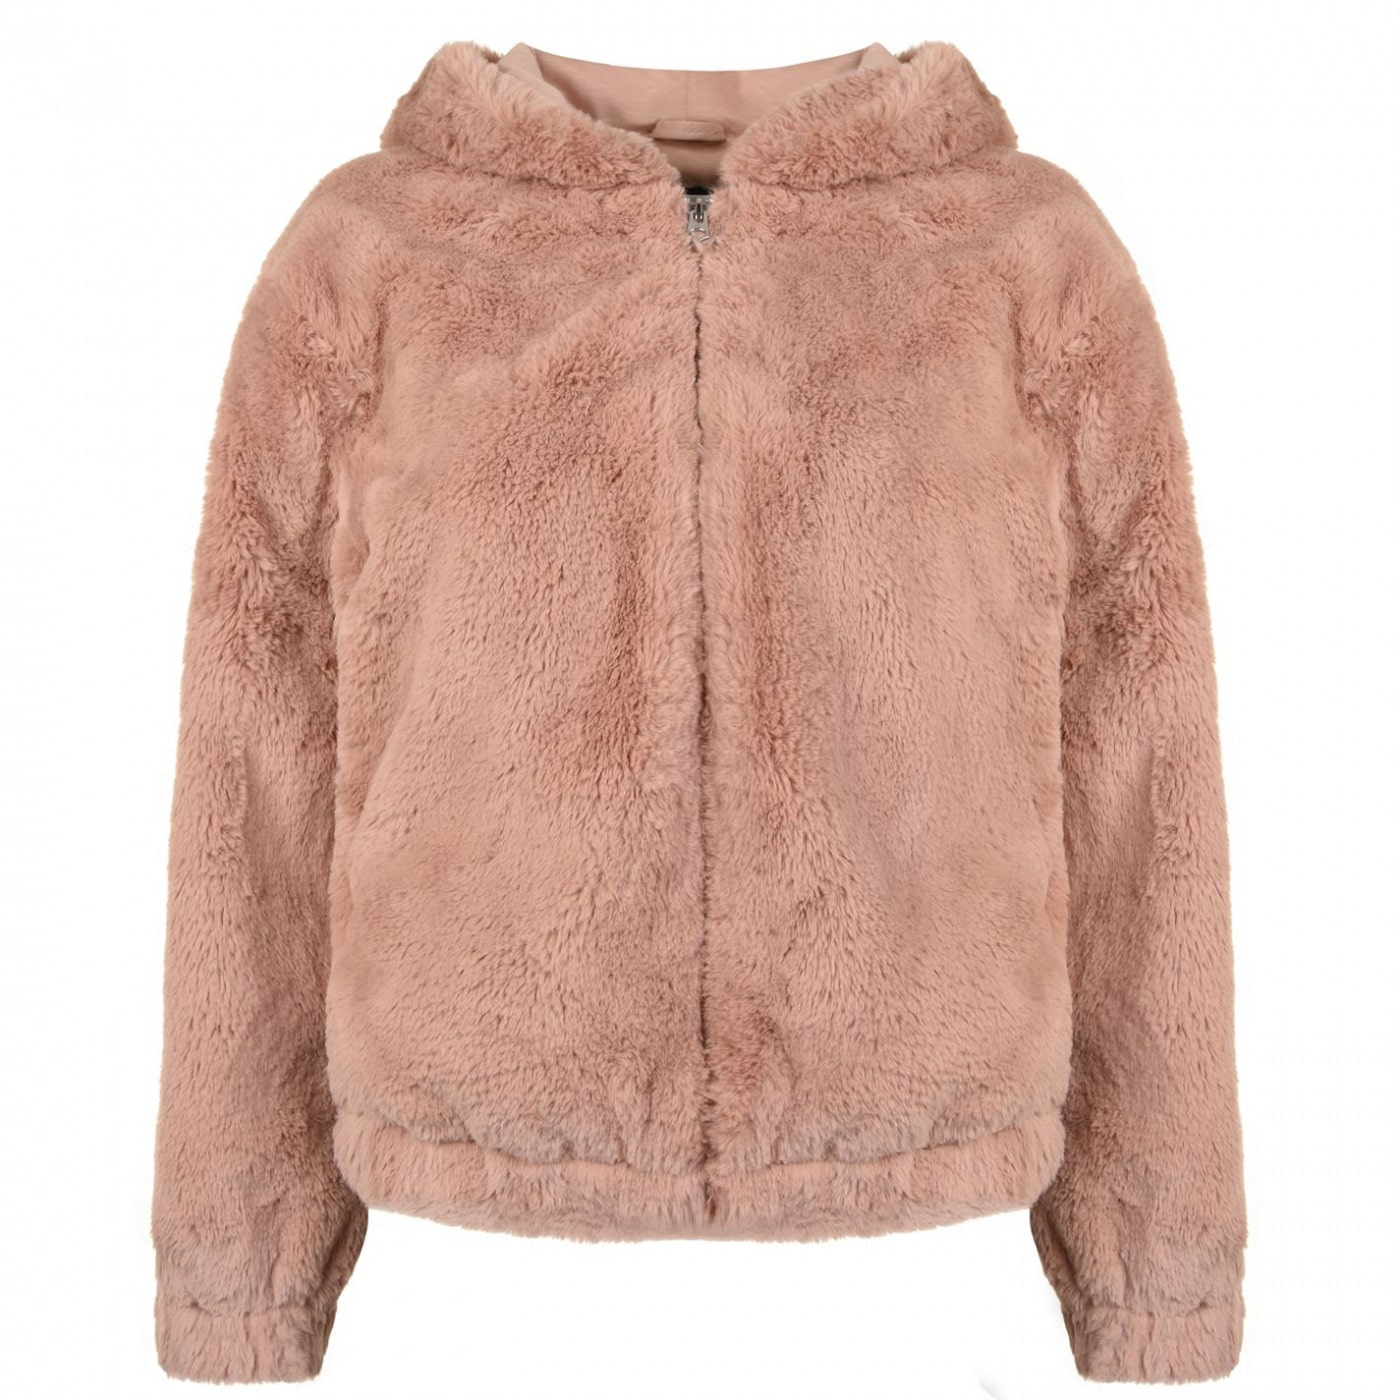 French Connection Faux Fur Hooded Jacket